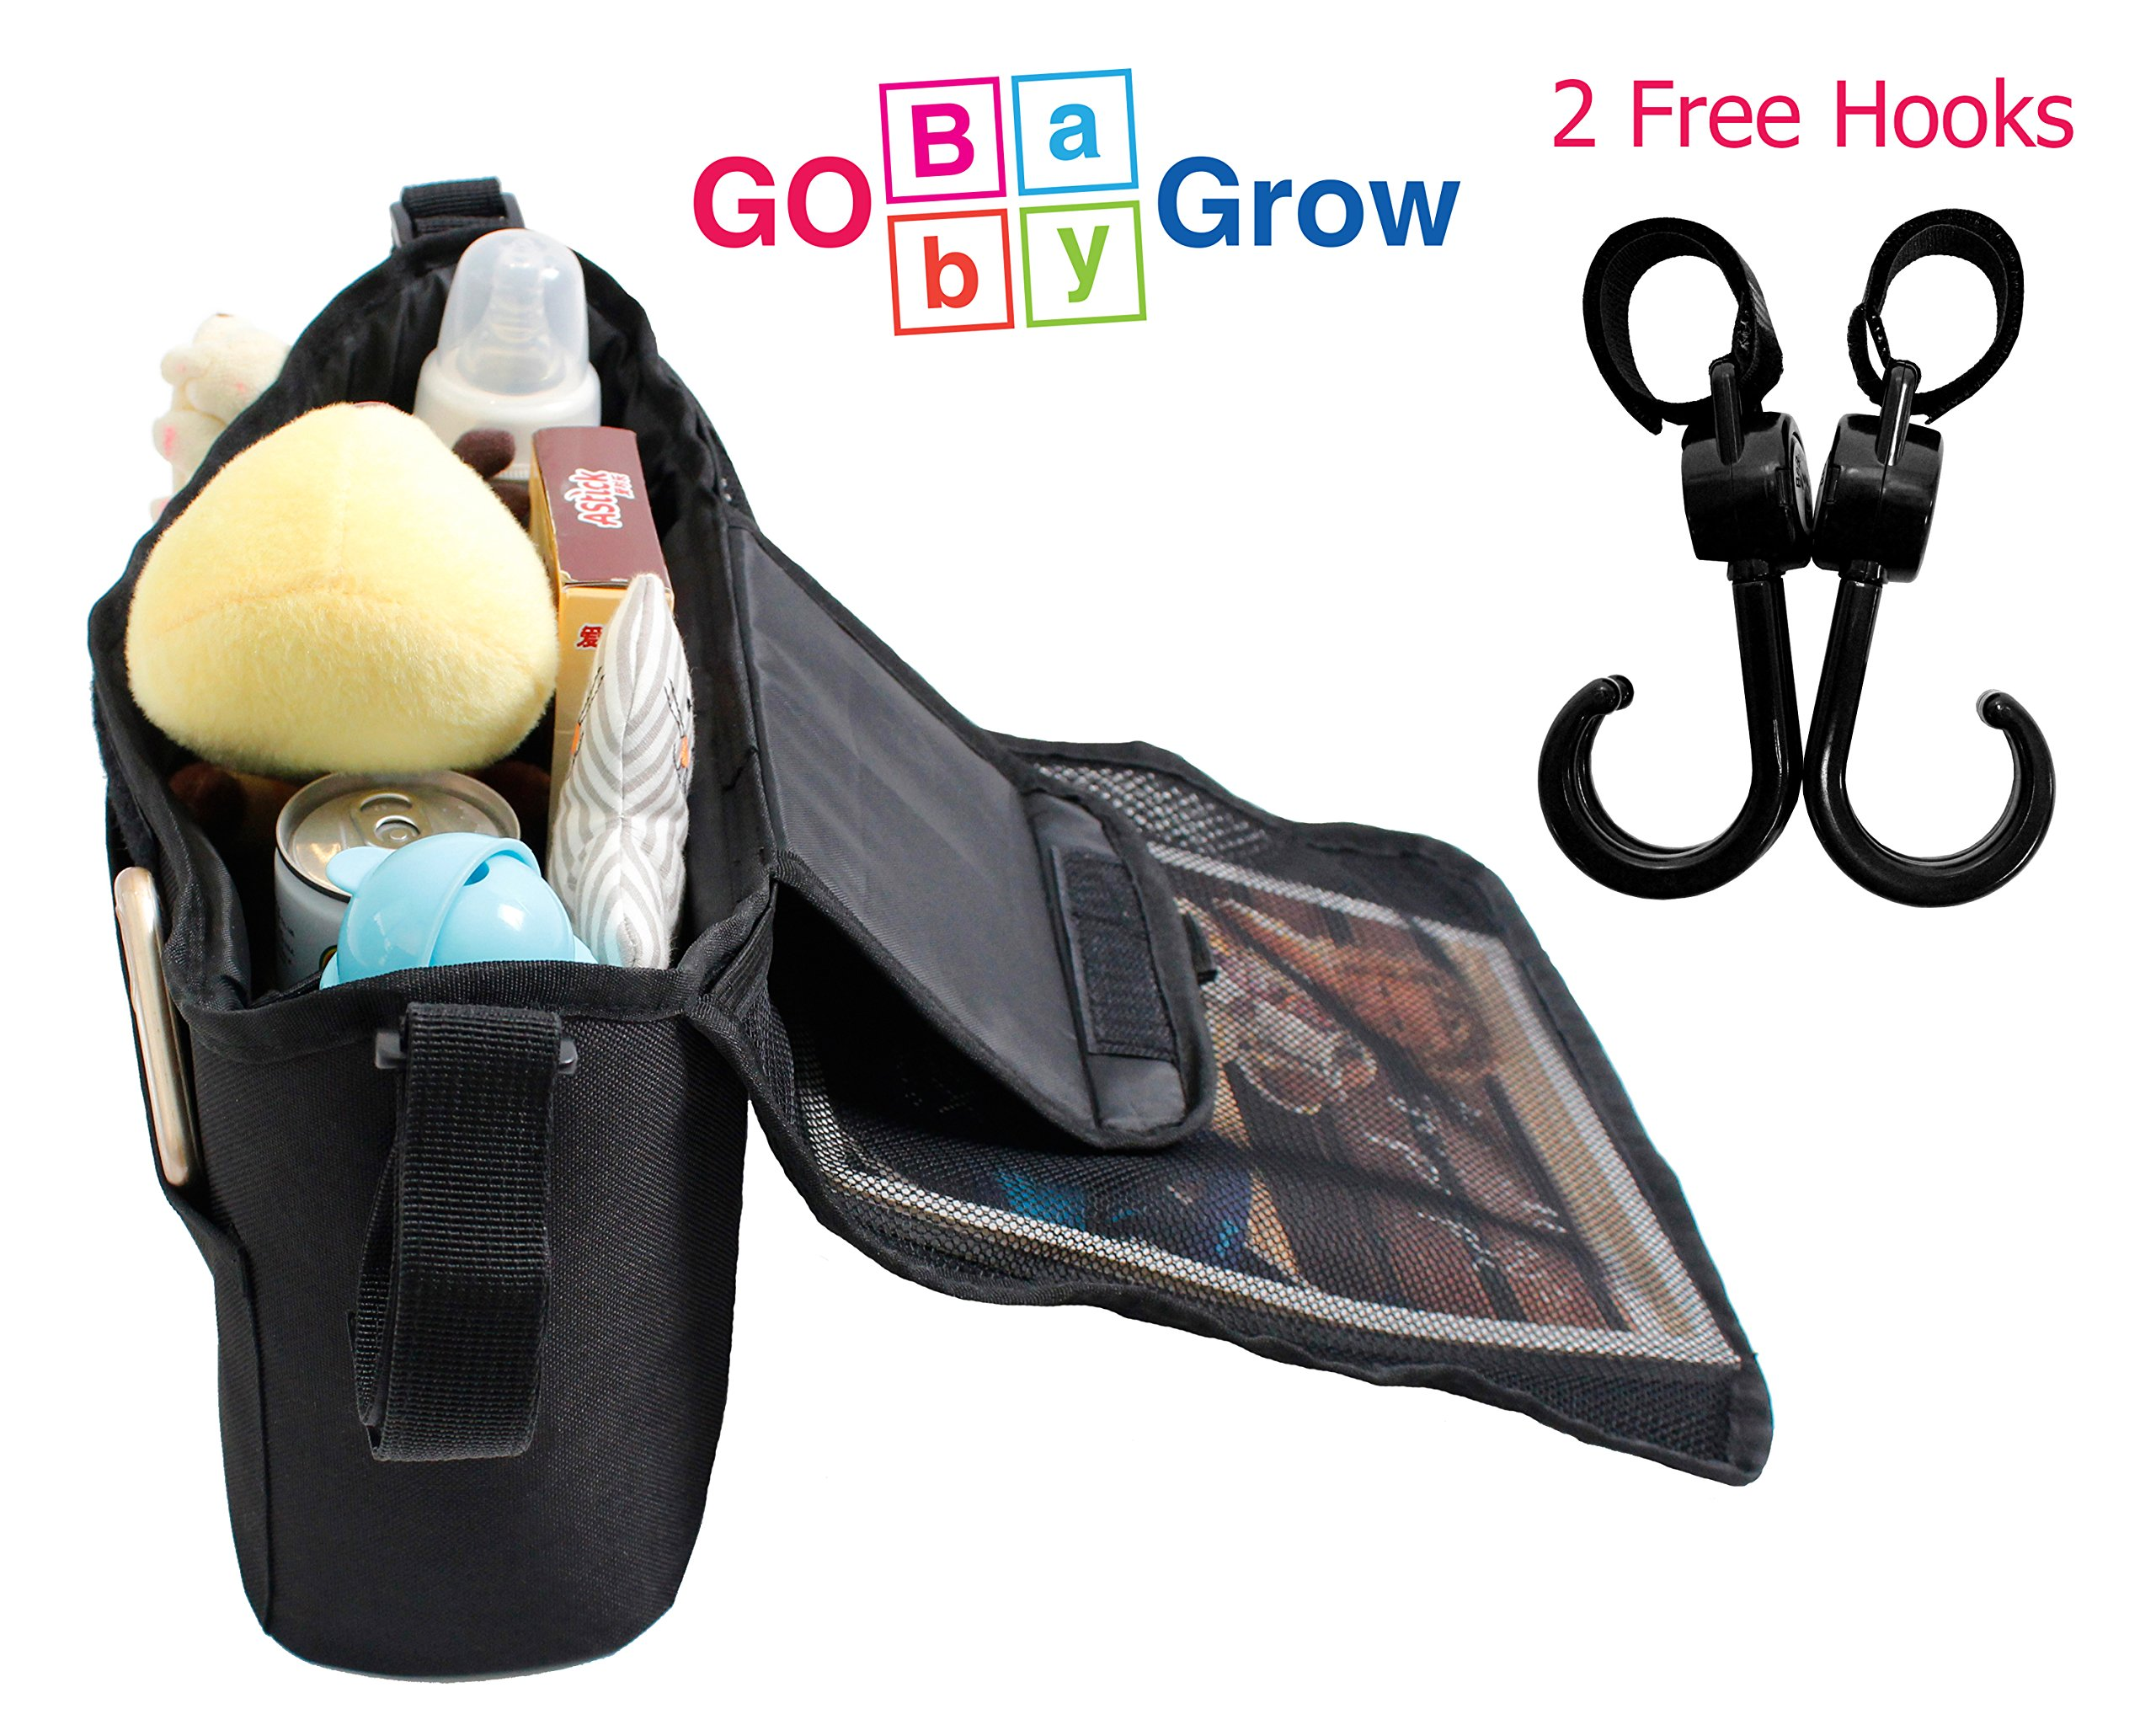 Stroller Organizer - Baby Strollers Store Baby Diapers, Water Bottle, Kids Toys |Baby Shower Gifts with Free Stroller Hook by Go Baby Grow